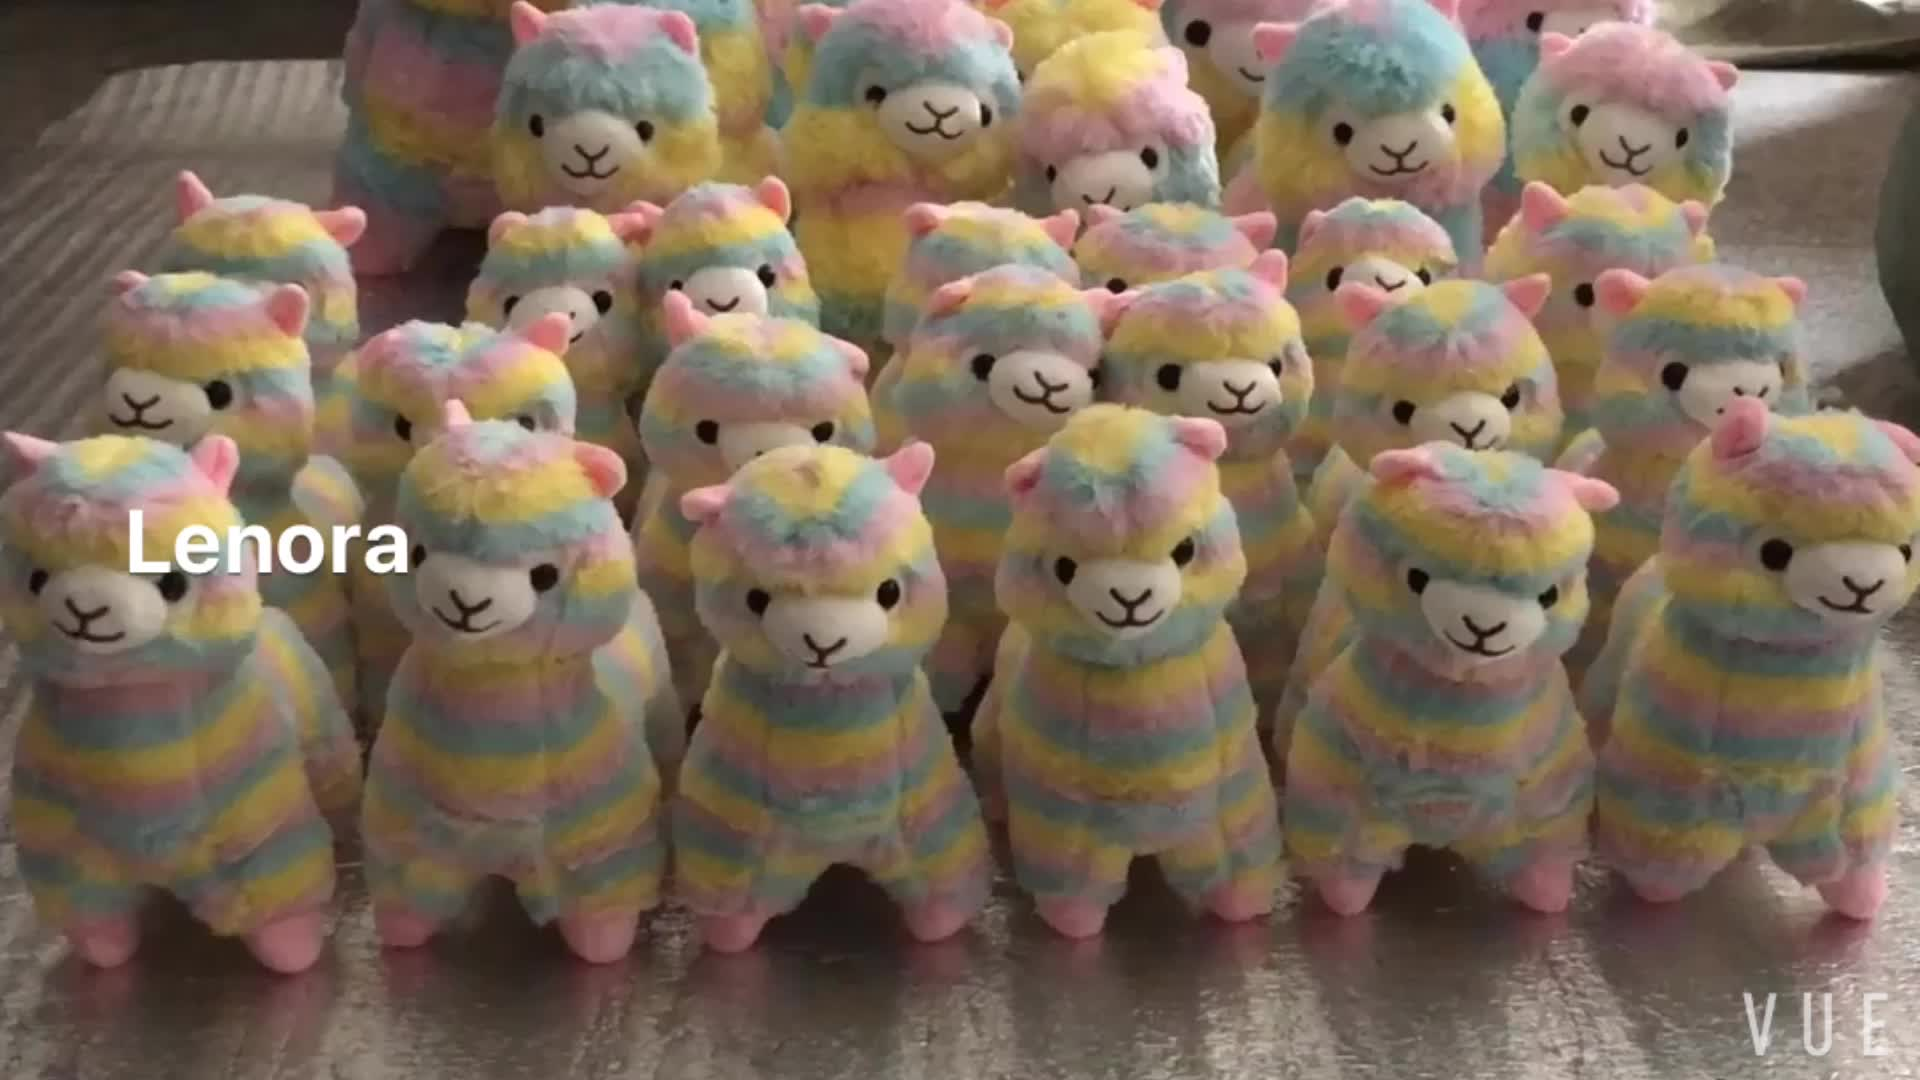 Promotional cute kawaii plush soft toy keychain for phone Custom made toy alpaca animal keychains with bell